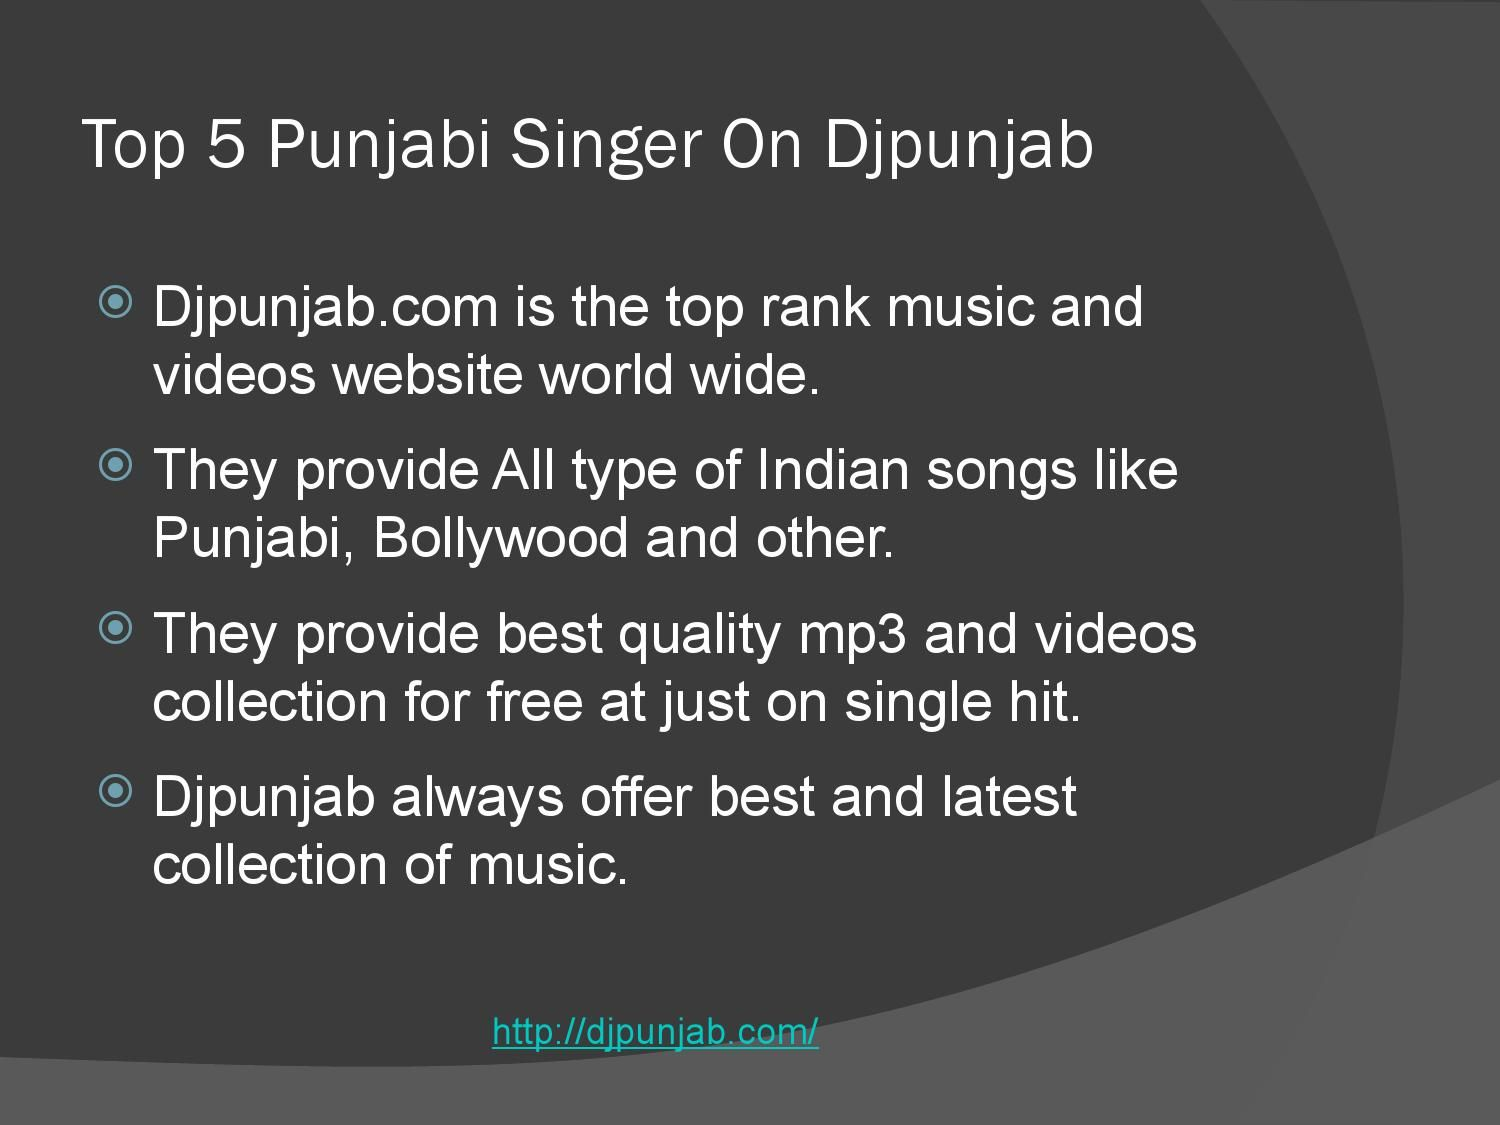 Top 5 punjabi singer on djpunjab Top Music Artists